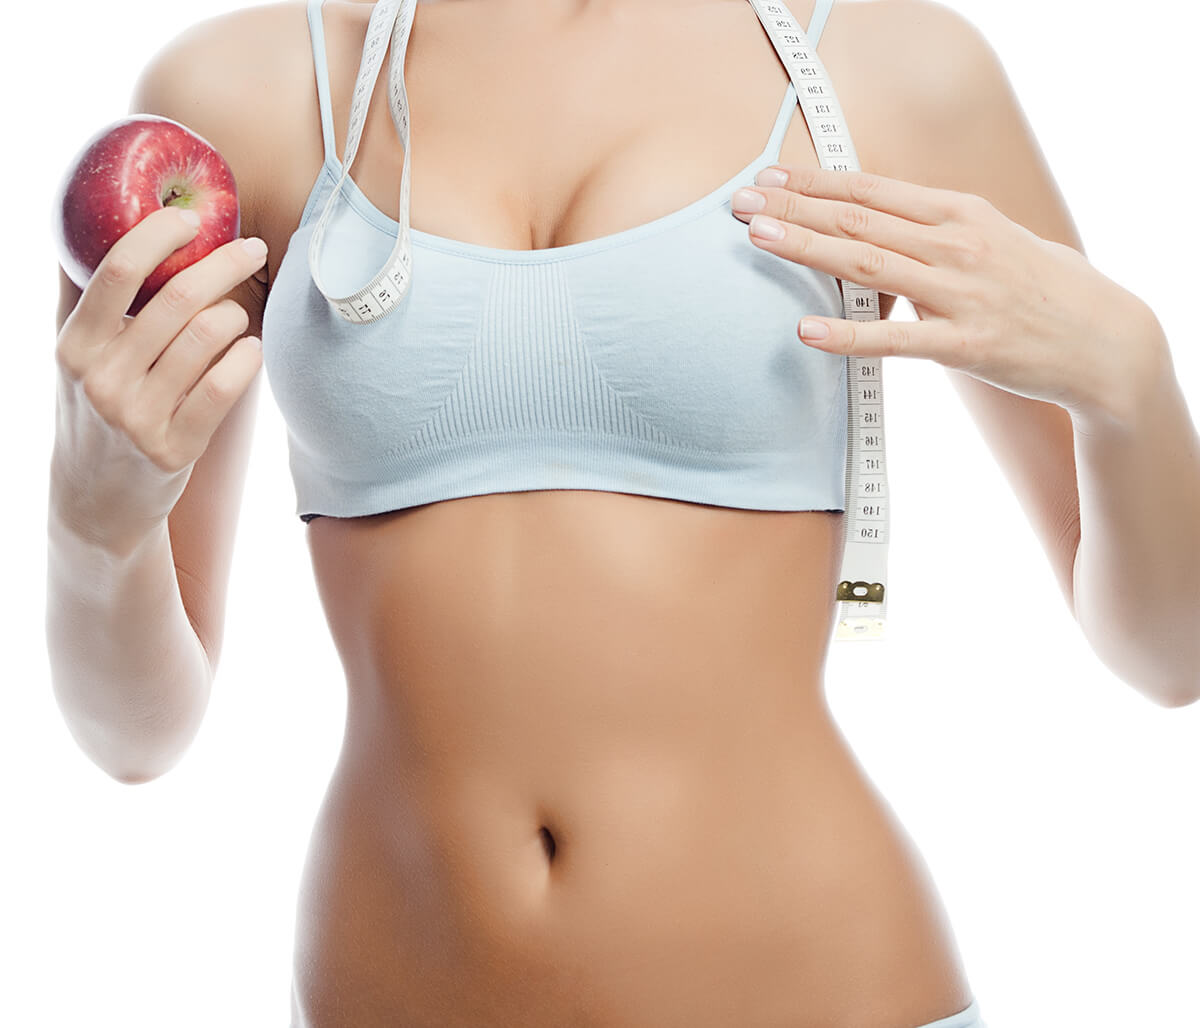 West Palm Beach, FL Area Dermatologist Offers Clinical Trials for Coolsculpting Treatments